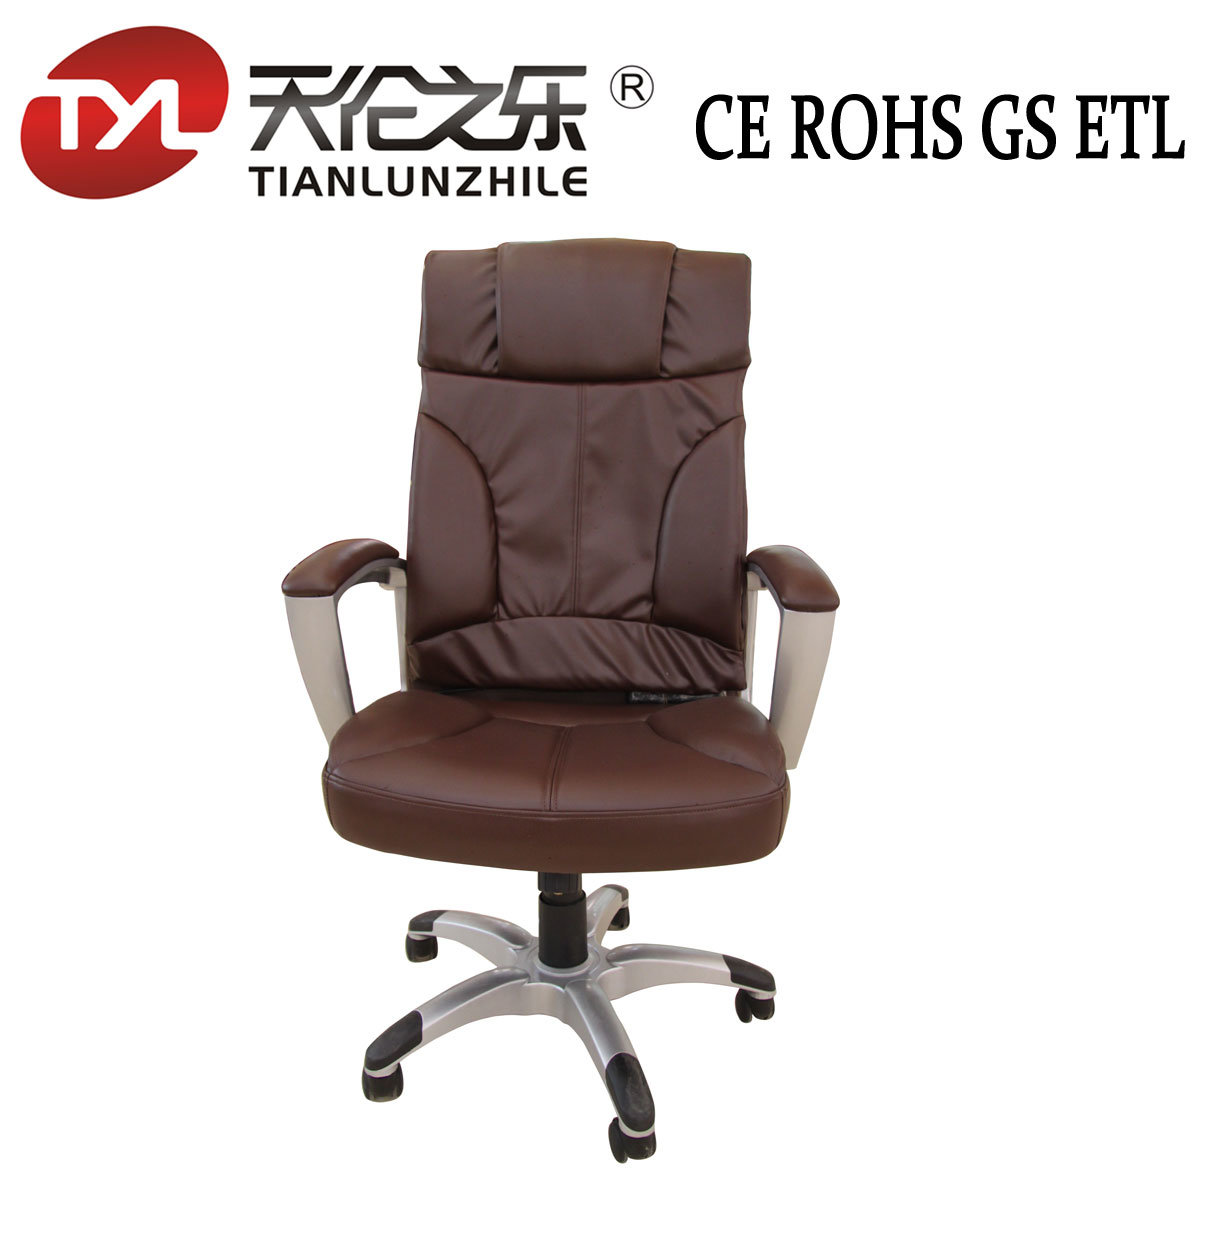 CHAIR MASSAGE OFFICE OFFICE CHAIRS